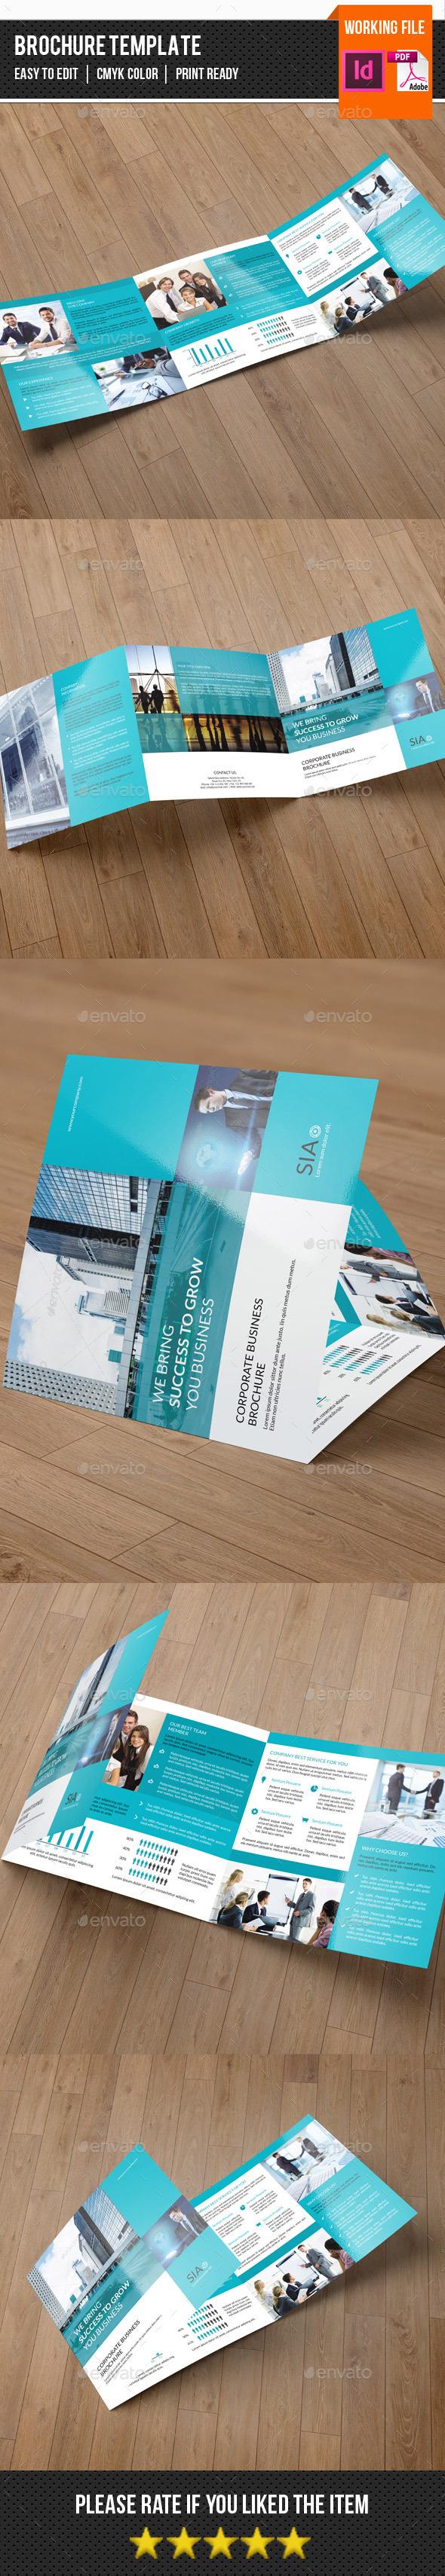 Corporate Square Trifold-v75 - Corporate Brochures